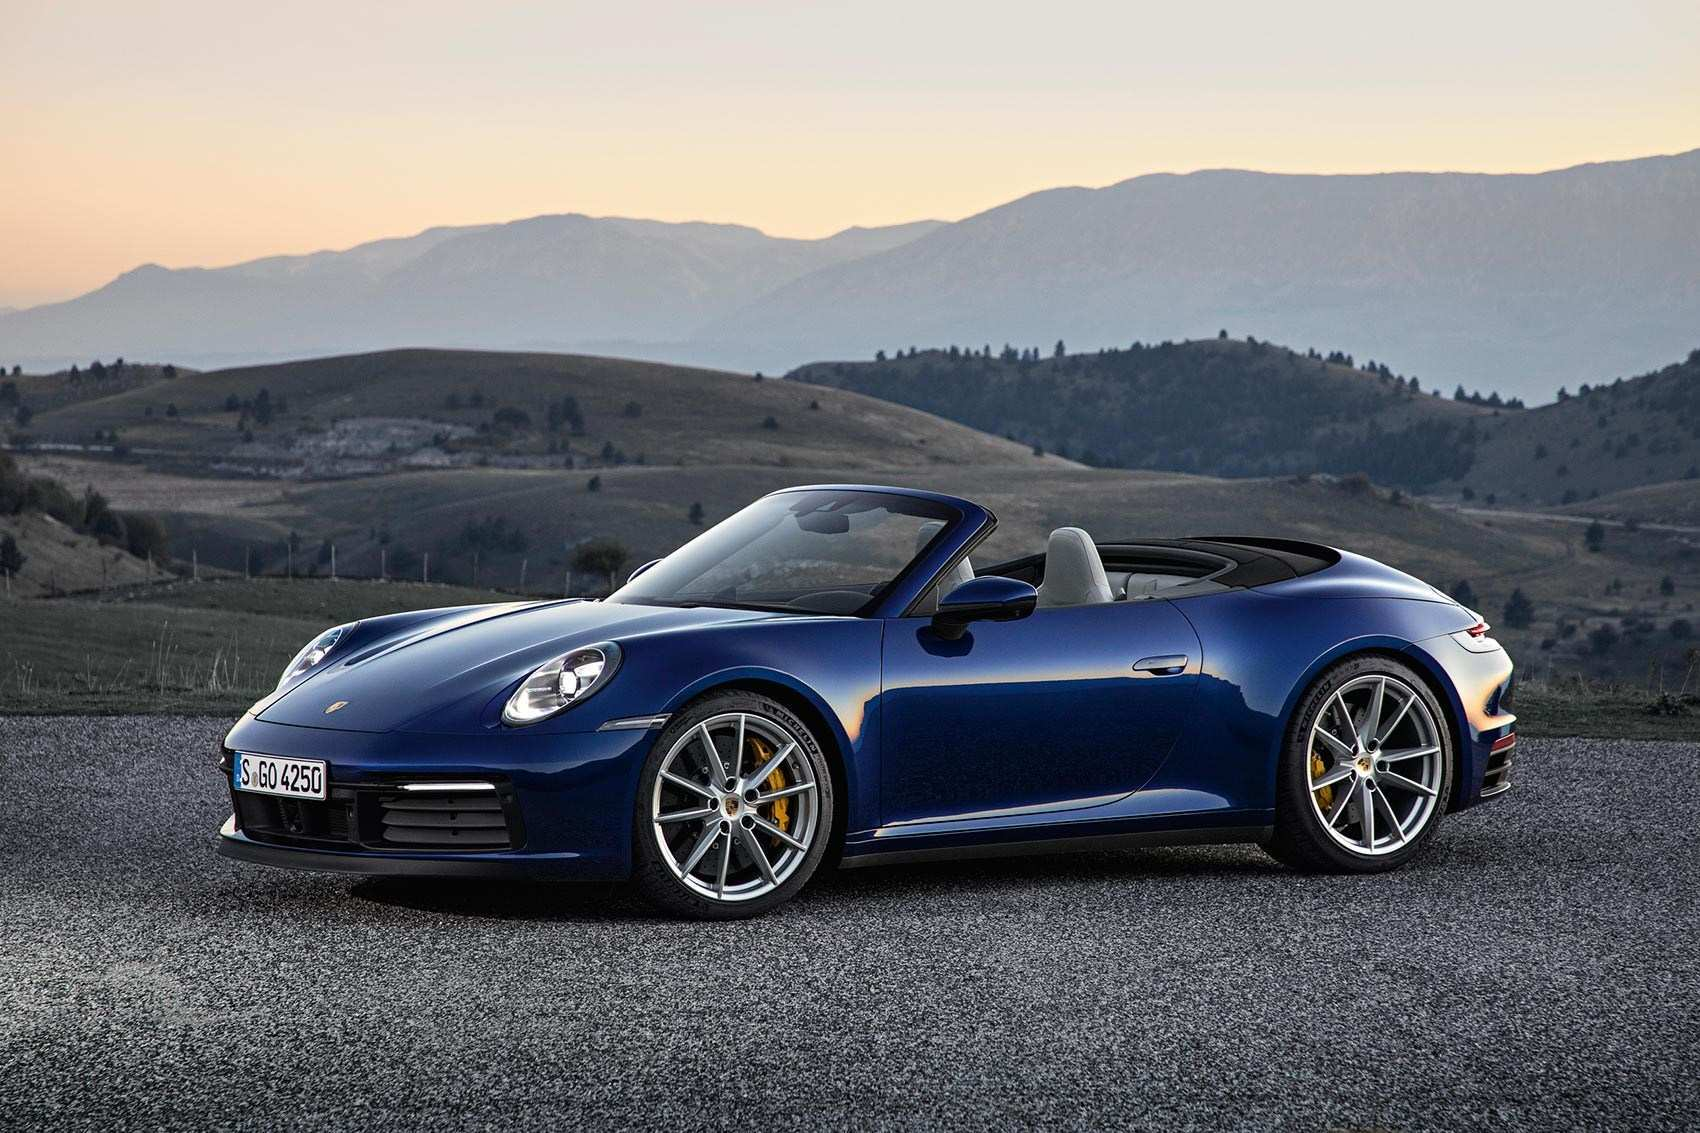 62 Best Review 2019 Porsche 911 4S Pricing for 2019 Porsche 911 4S